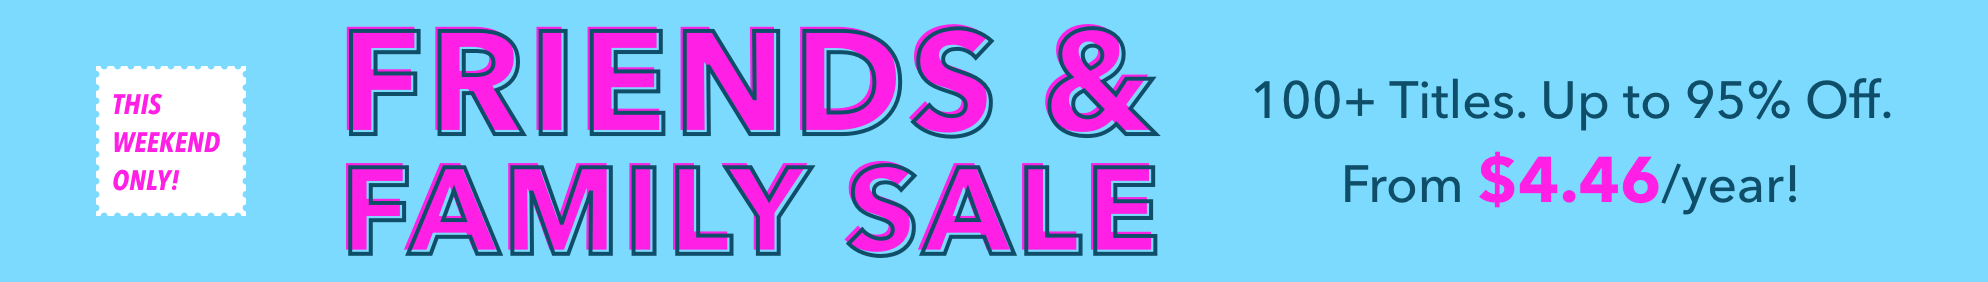 Friends & Family Sale March 18